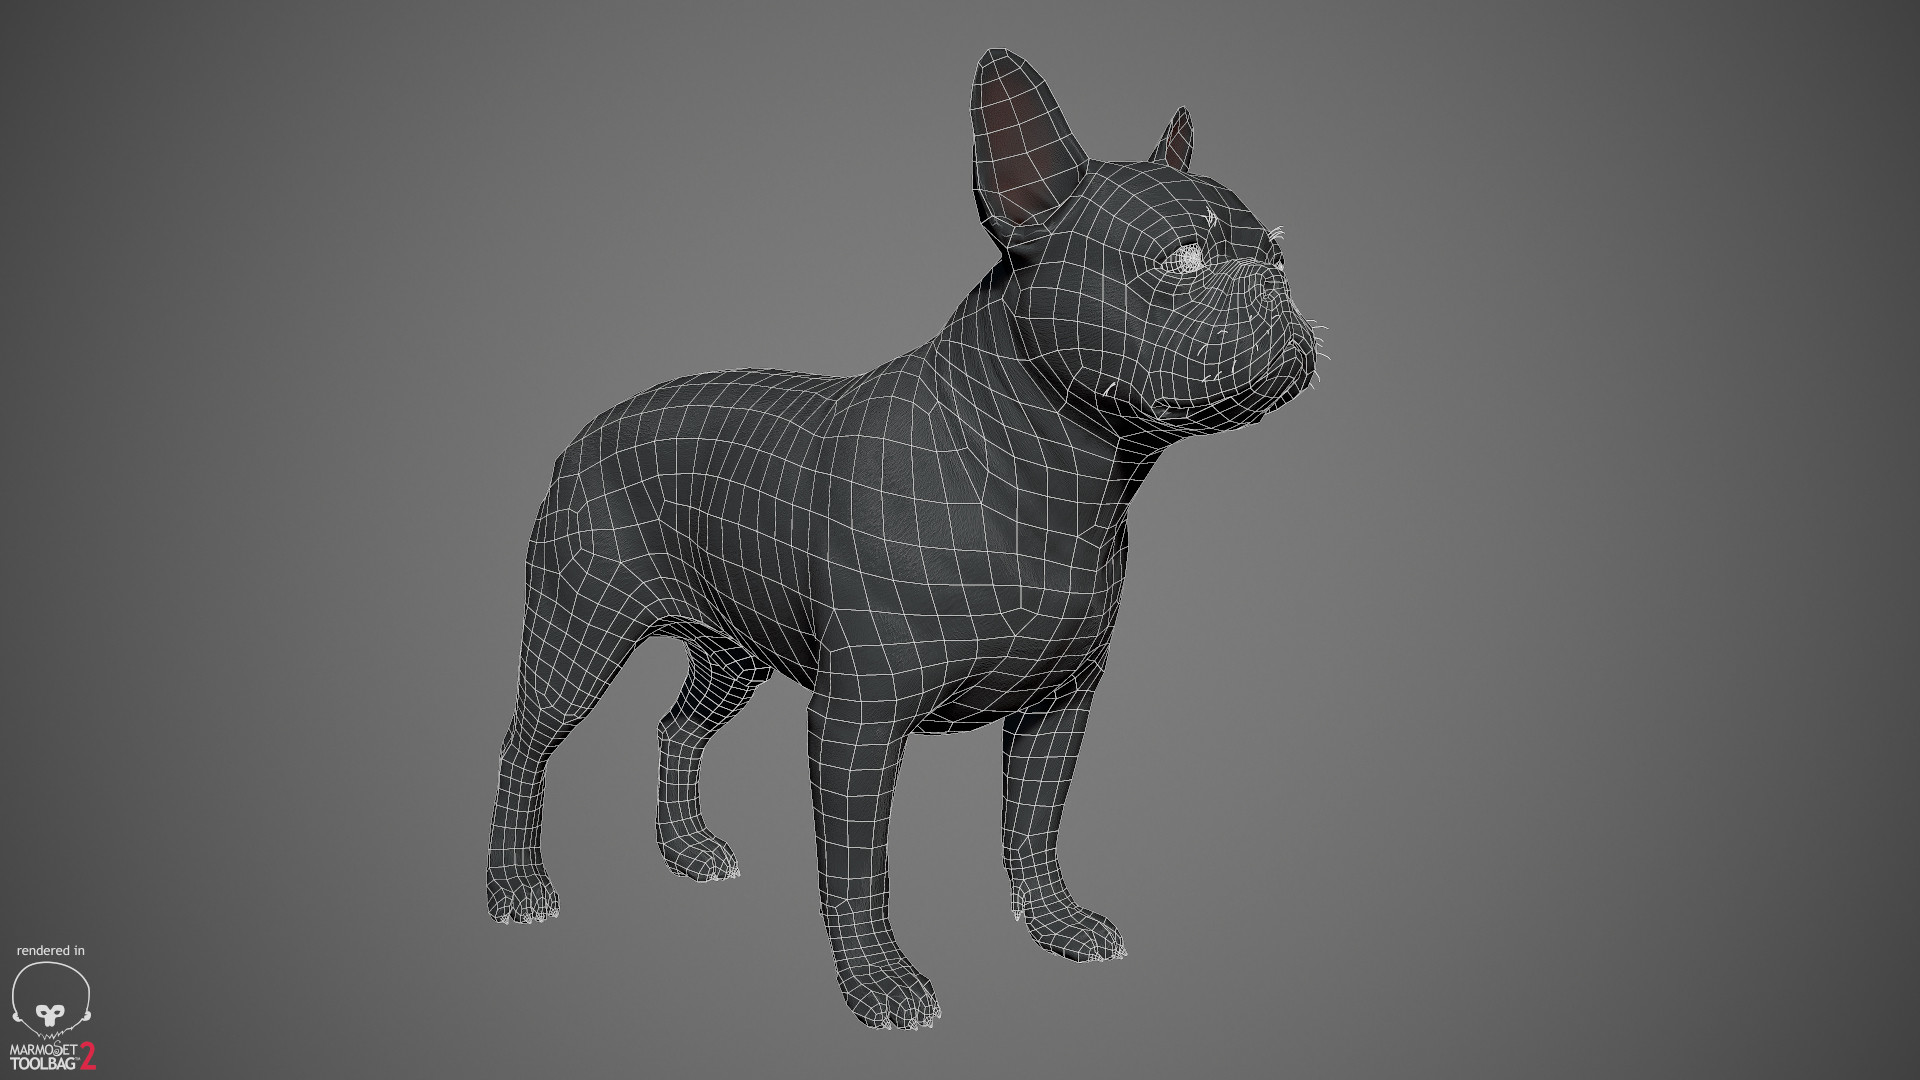 Alex lashko frenchbulldog by alexlashko wireframe 01